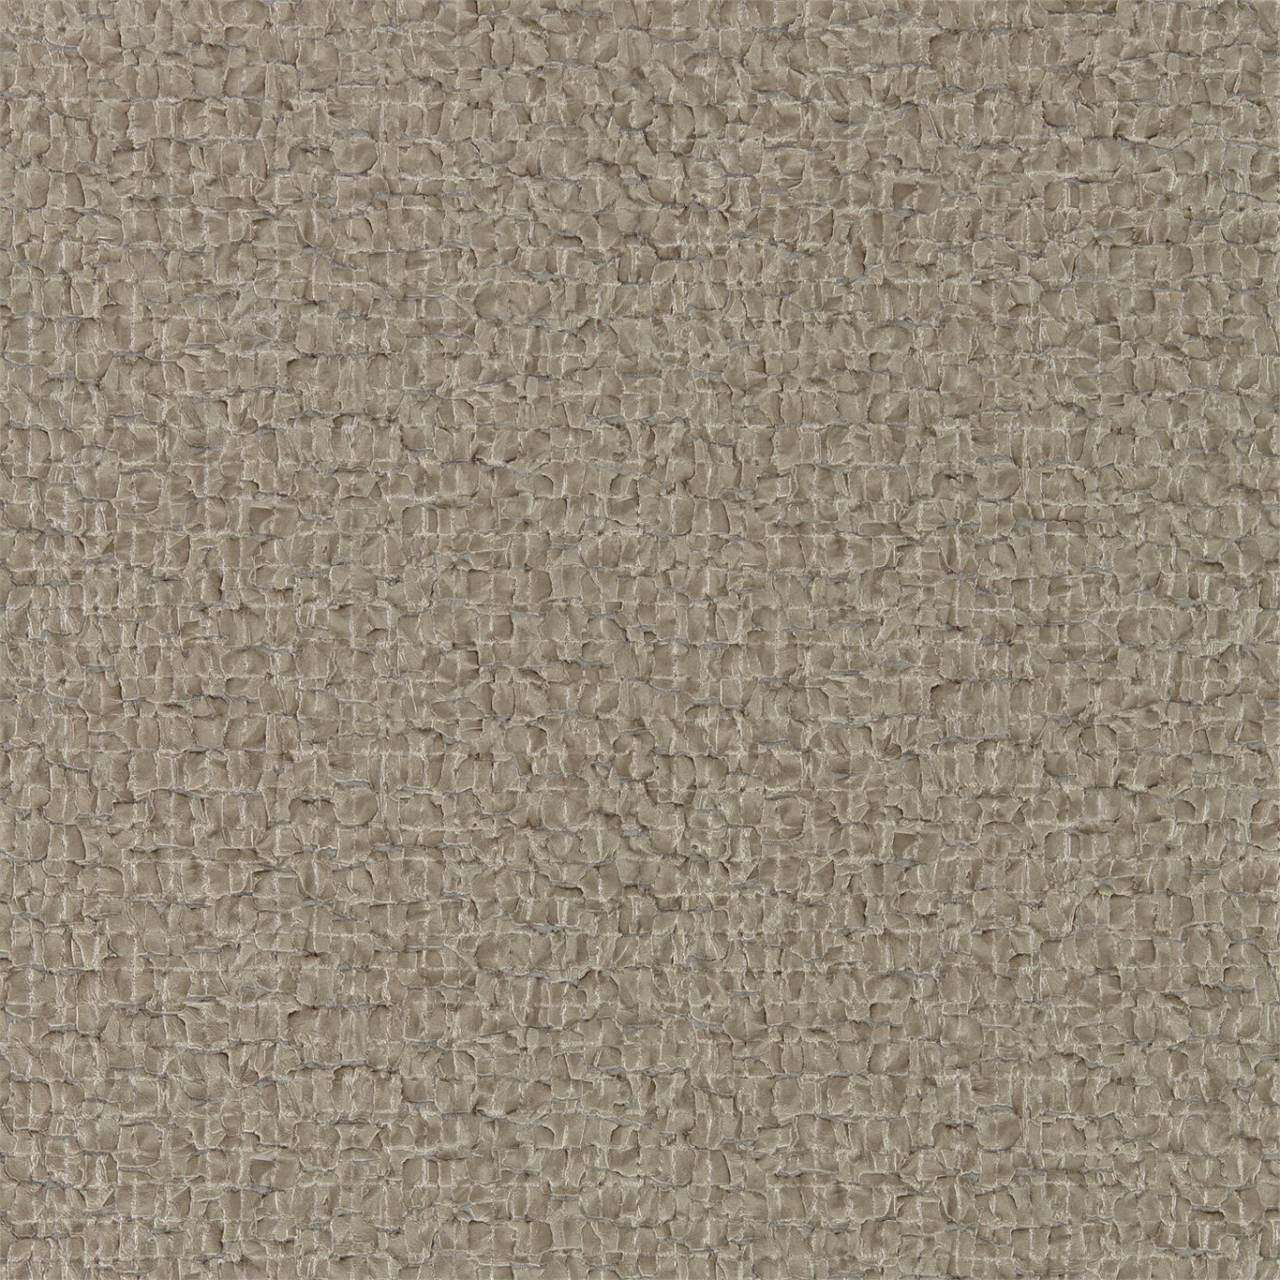 Leighton Grey Pearl behang Zoffany Selected wallpapers by OOSTENDORP